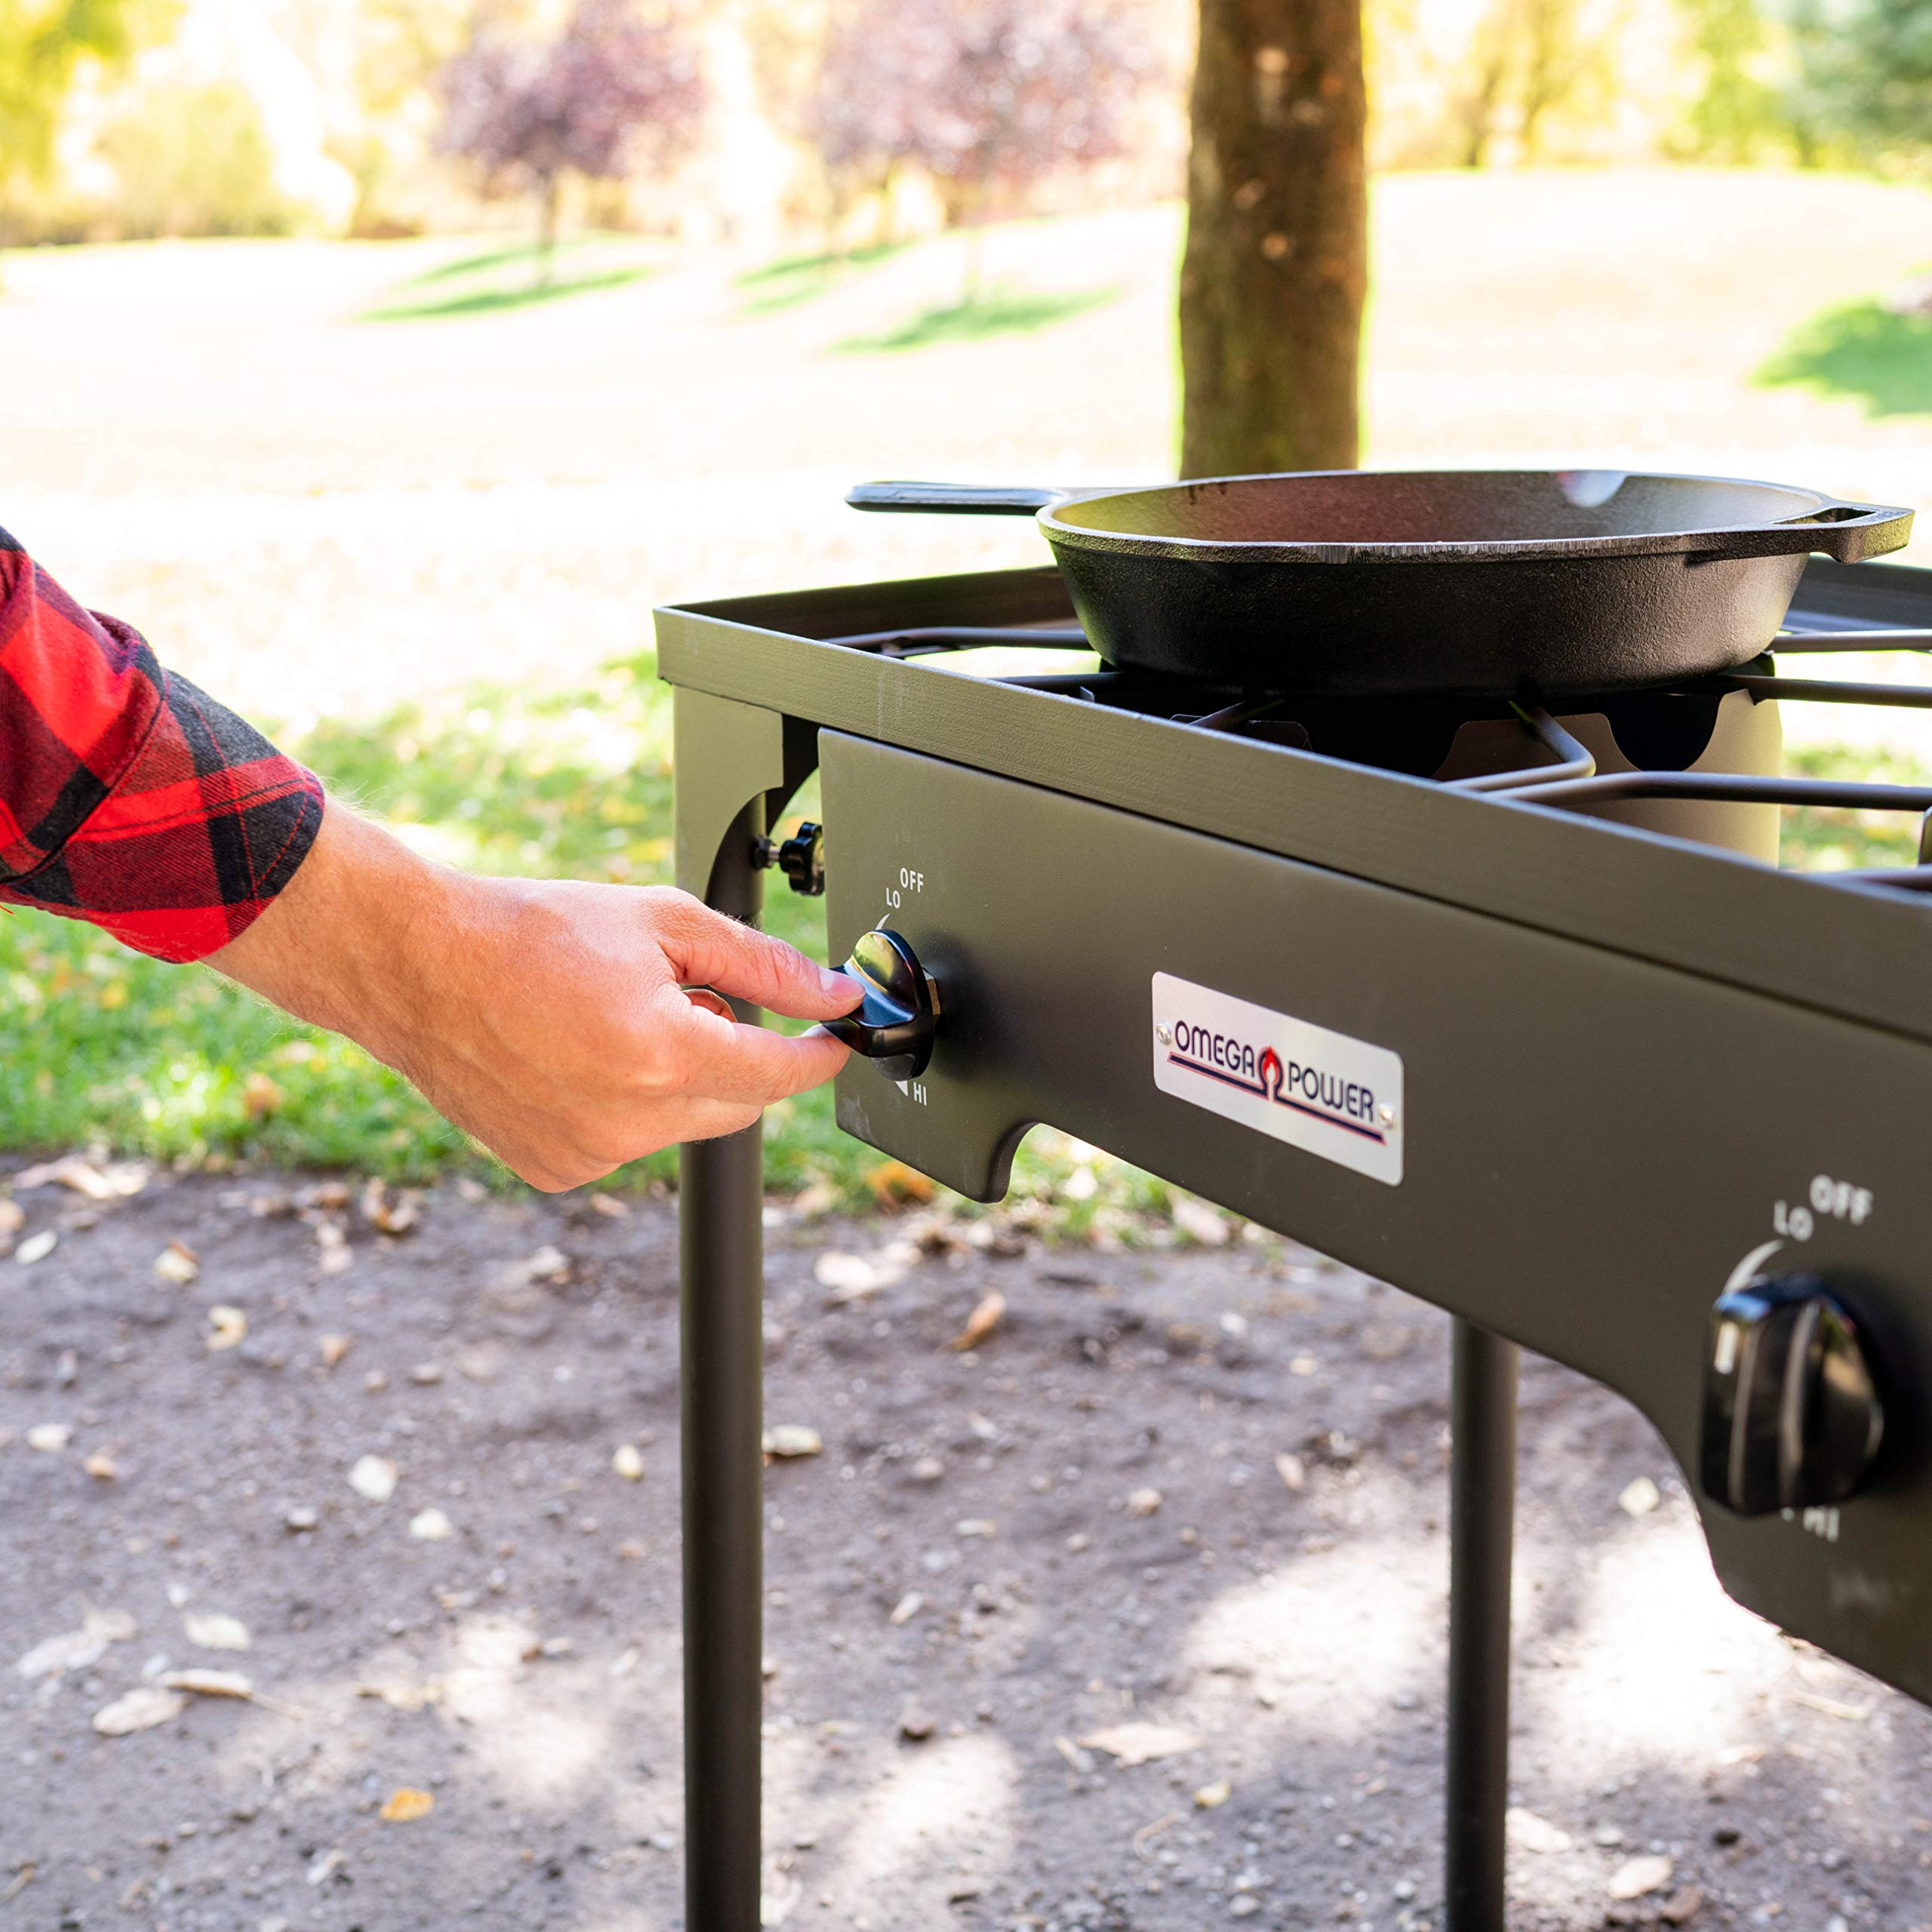 Leaderware High Pressure Gas Cooking Stove with 2 Burners, Outdoor Camping Kitchen Accessories by Leaderware (Image #4)